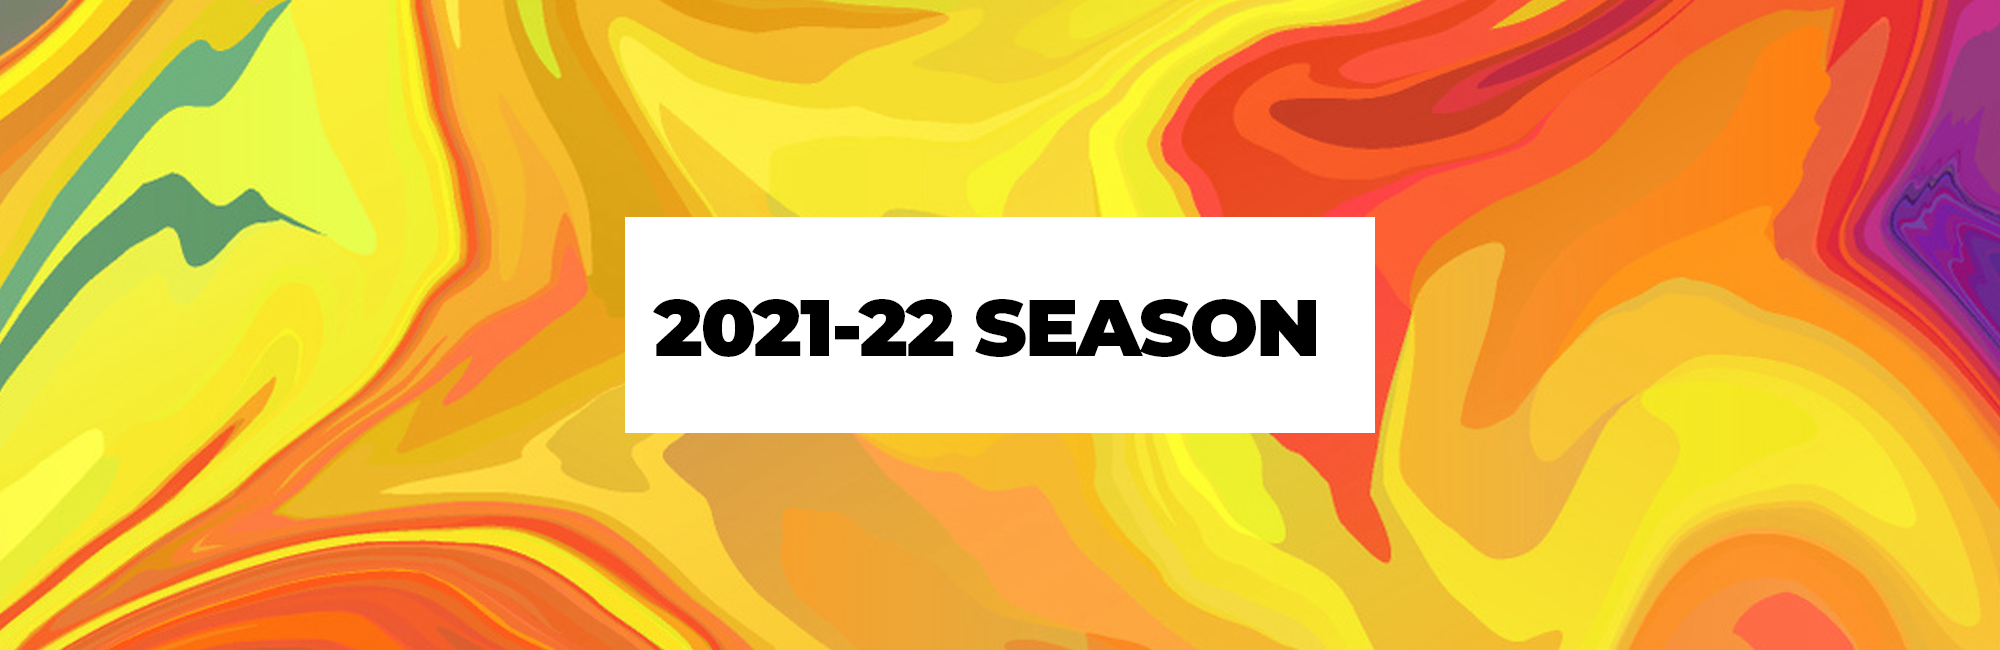 Image of paint colors swirling with 2021-22 Season text in the center